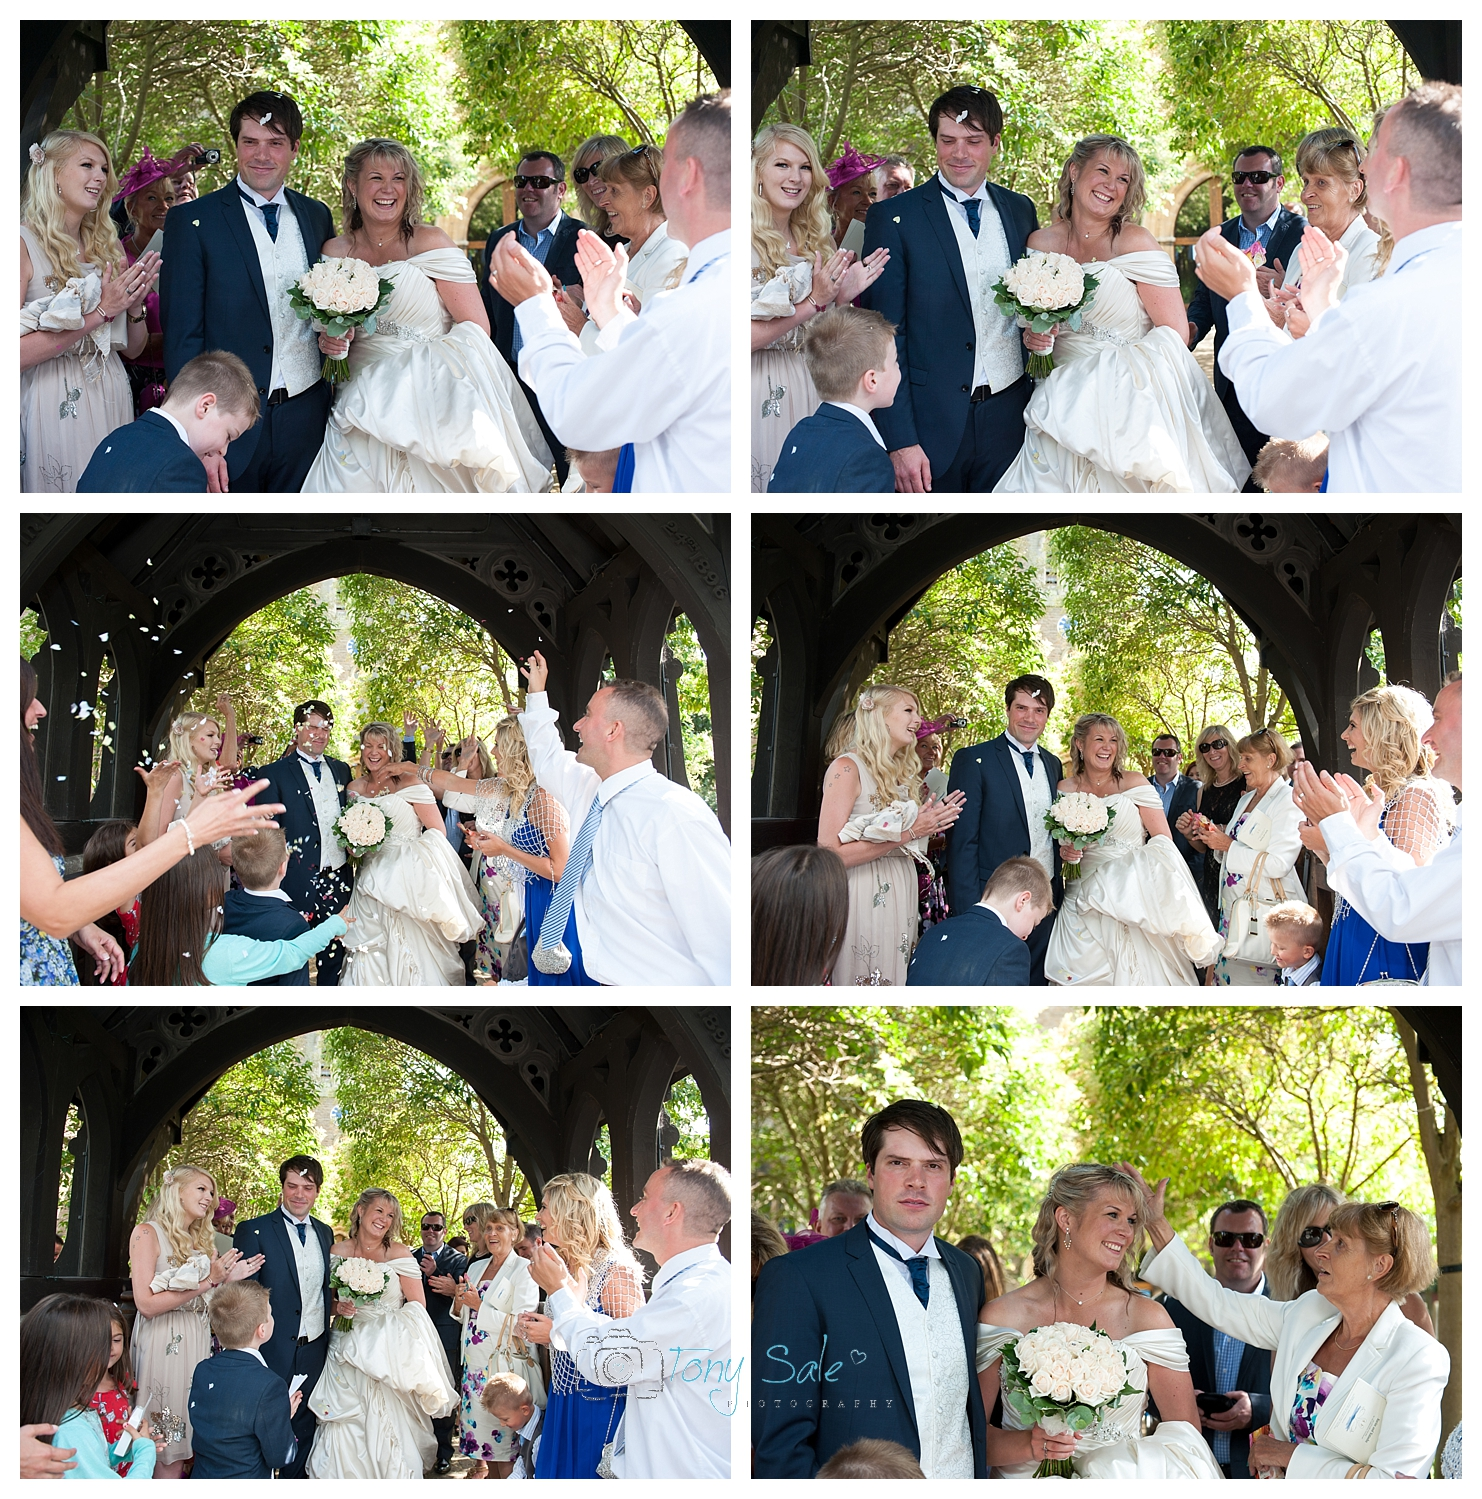 Hampton Court Wedding_Tony Sale Photography_022